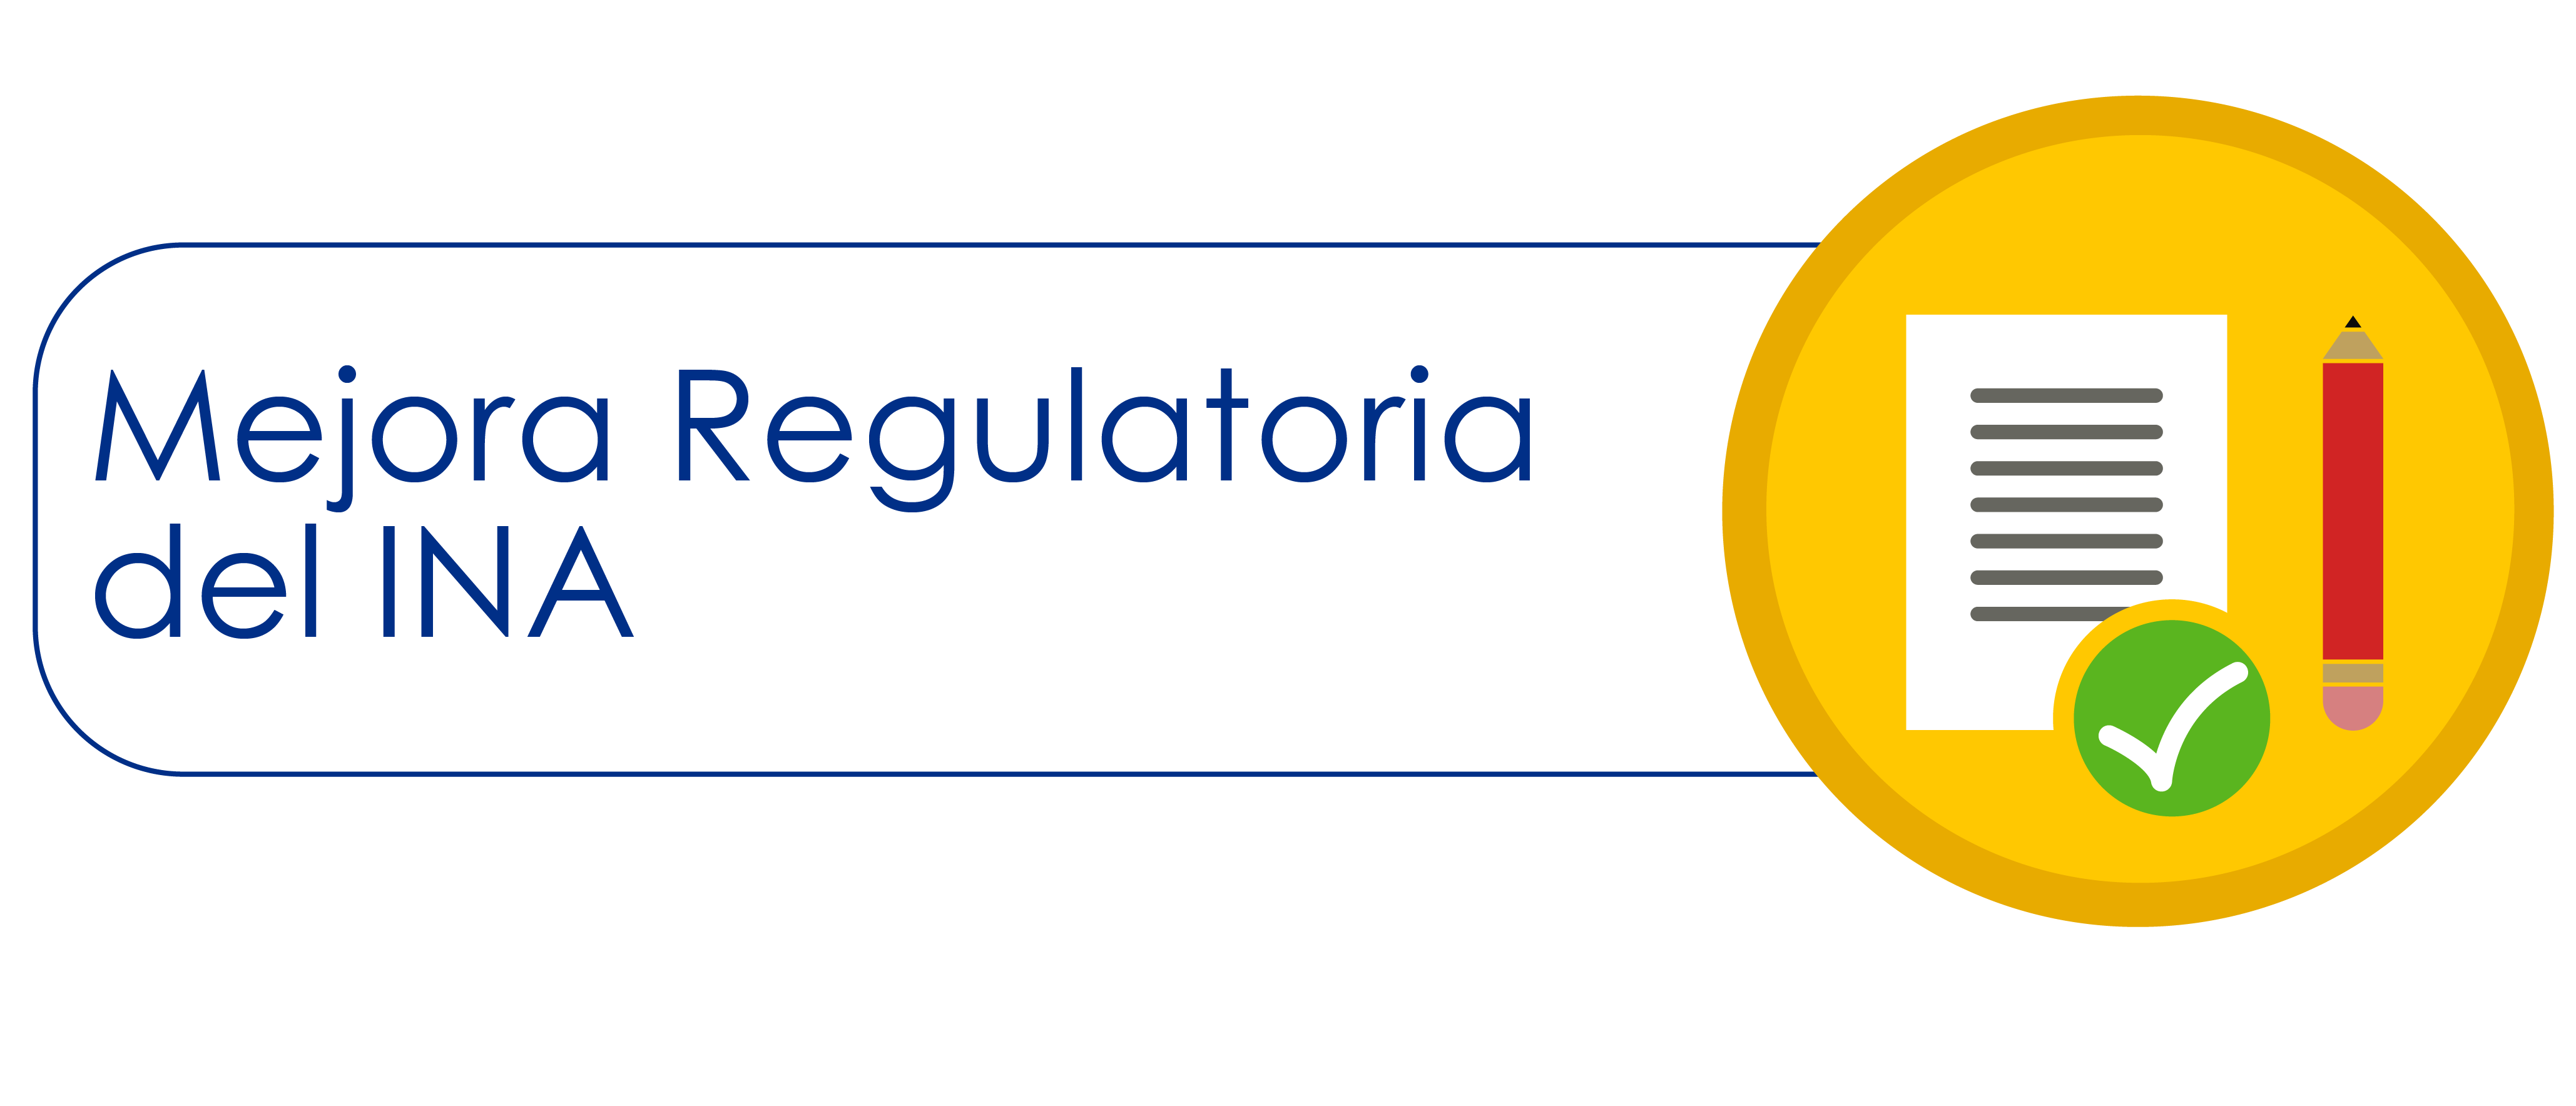 Plan Mejora Regulatoria INA